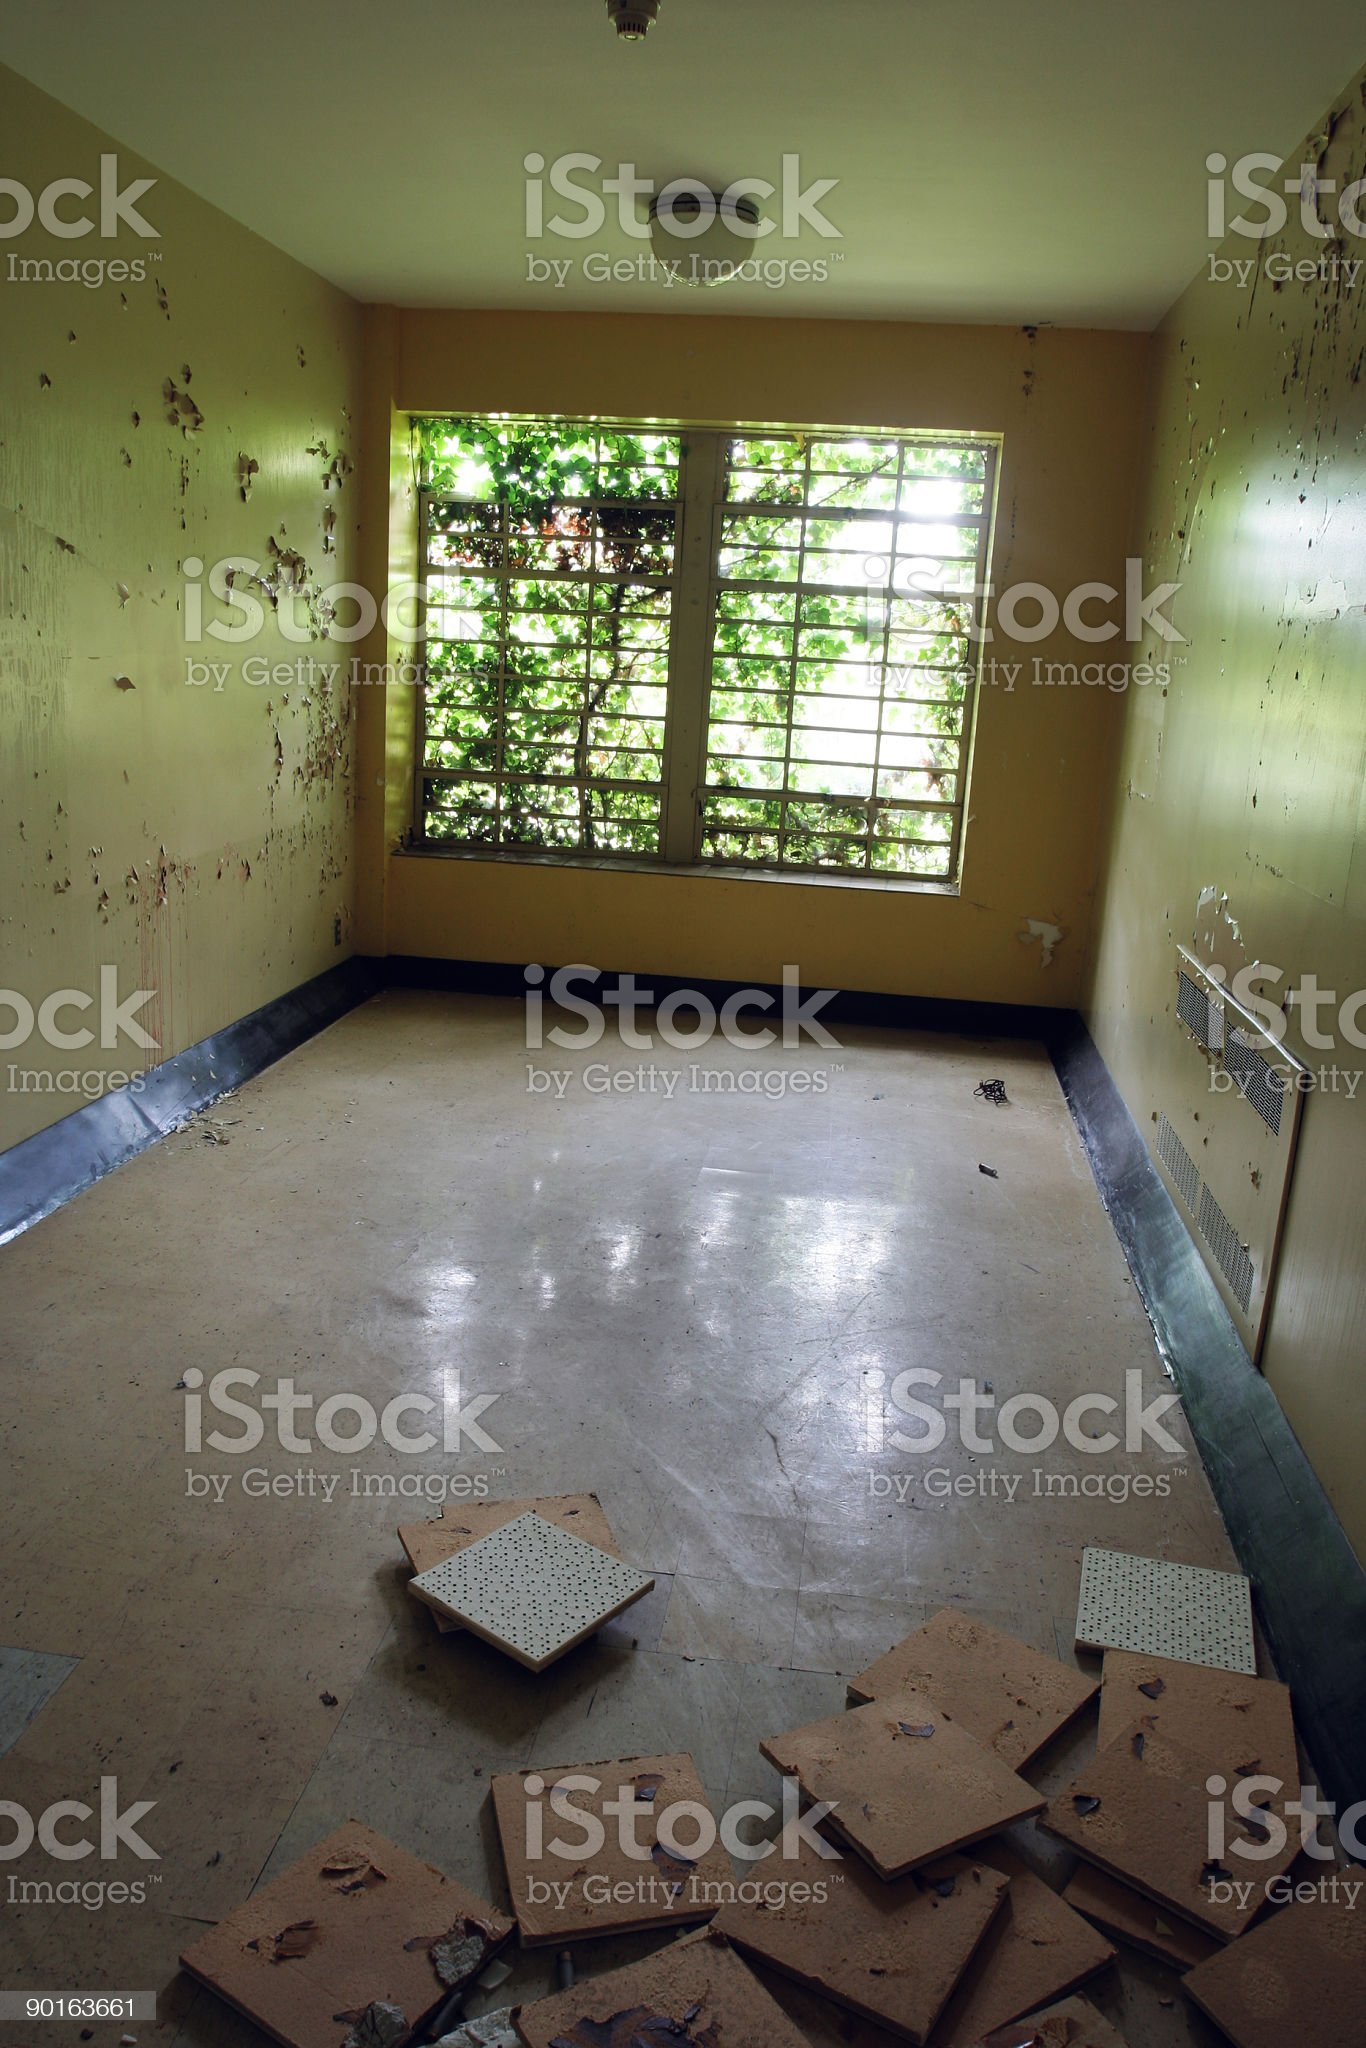 Abandonded Room in an Insane Asylum royalty-free stock photo